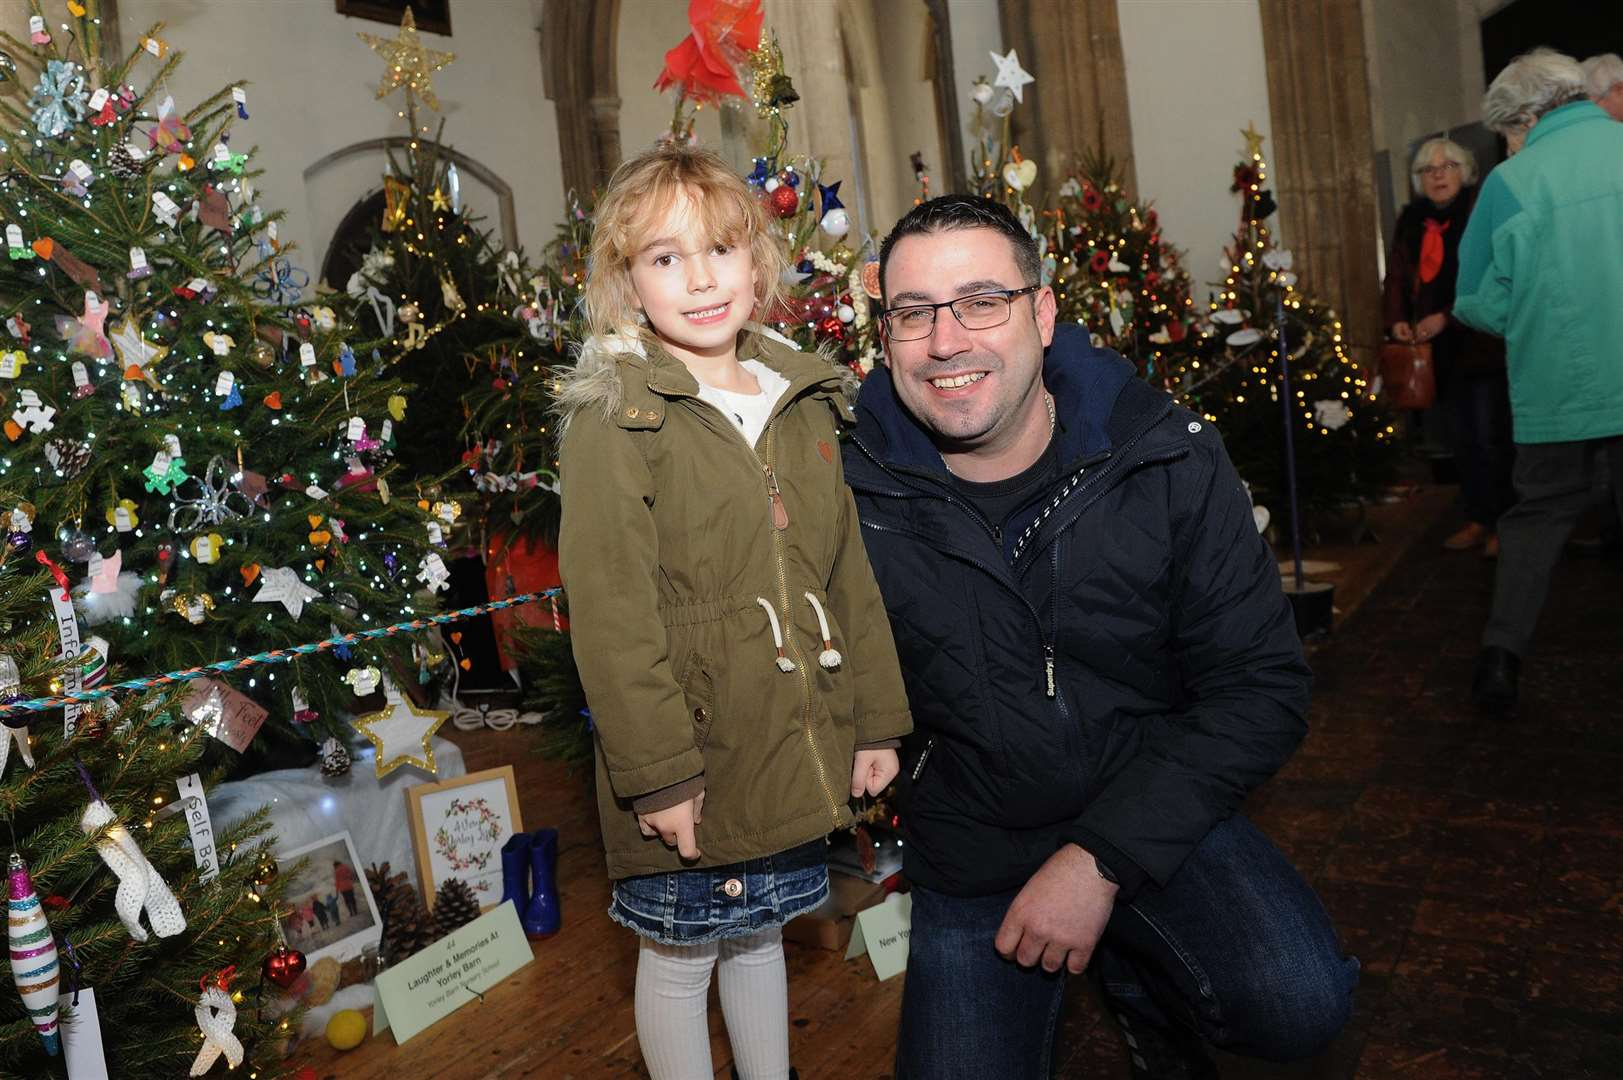 A Christmas tree festival has been staged at St Peter's, organised by Sudbury Rotary Club...Pictured: Jason and Paige (6) Lavender visiting the festival...PICTURE: Mecha Morton. (5877126)